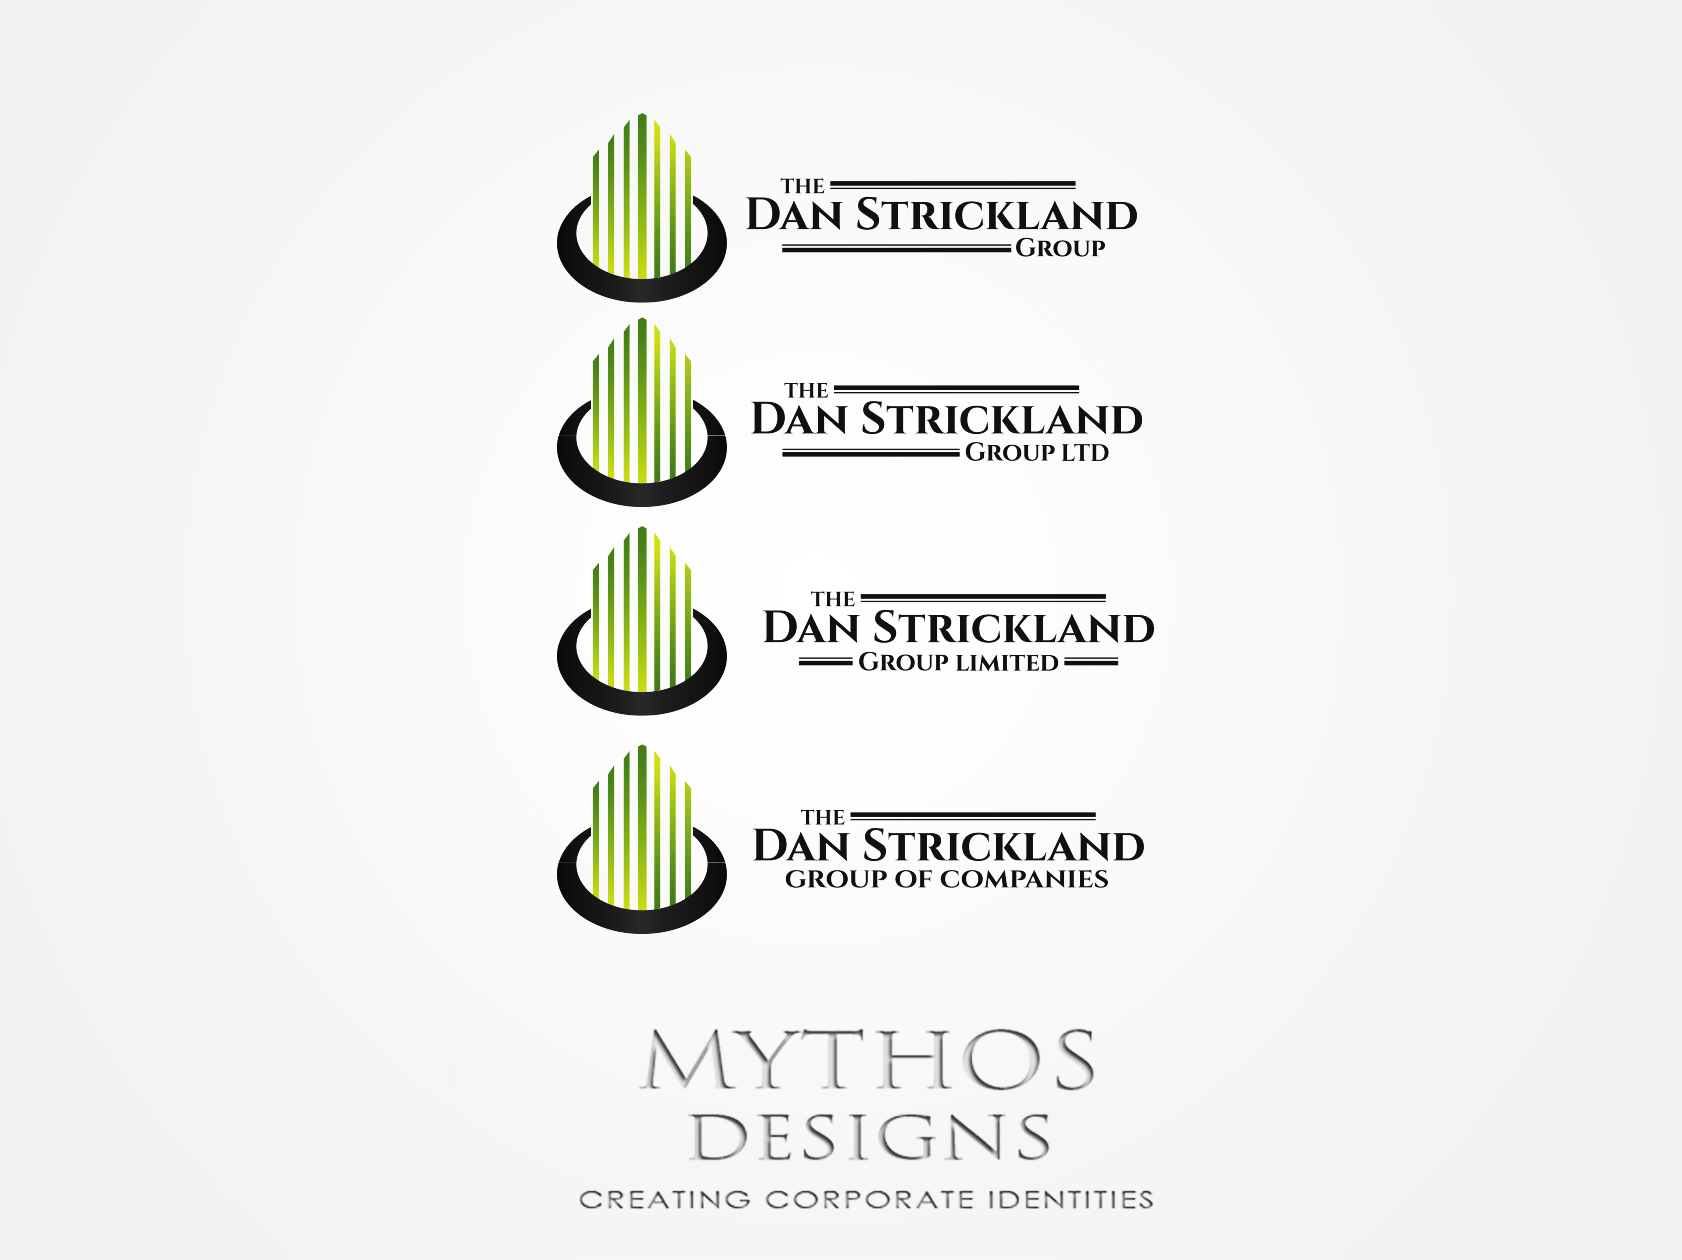 Logo Design by Mythos Designs - Entry No. 95 in the Logo Design Contest Creative Logo Design for The Dan Strickland Group.